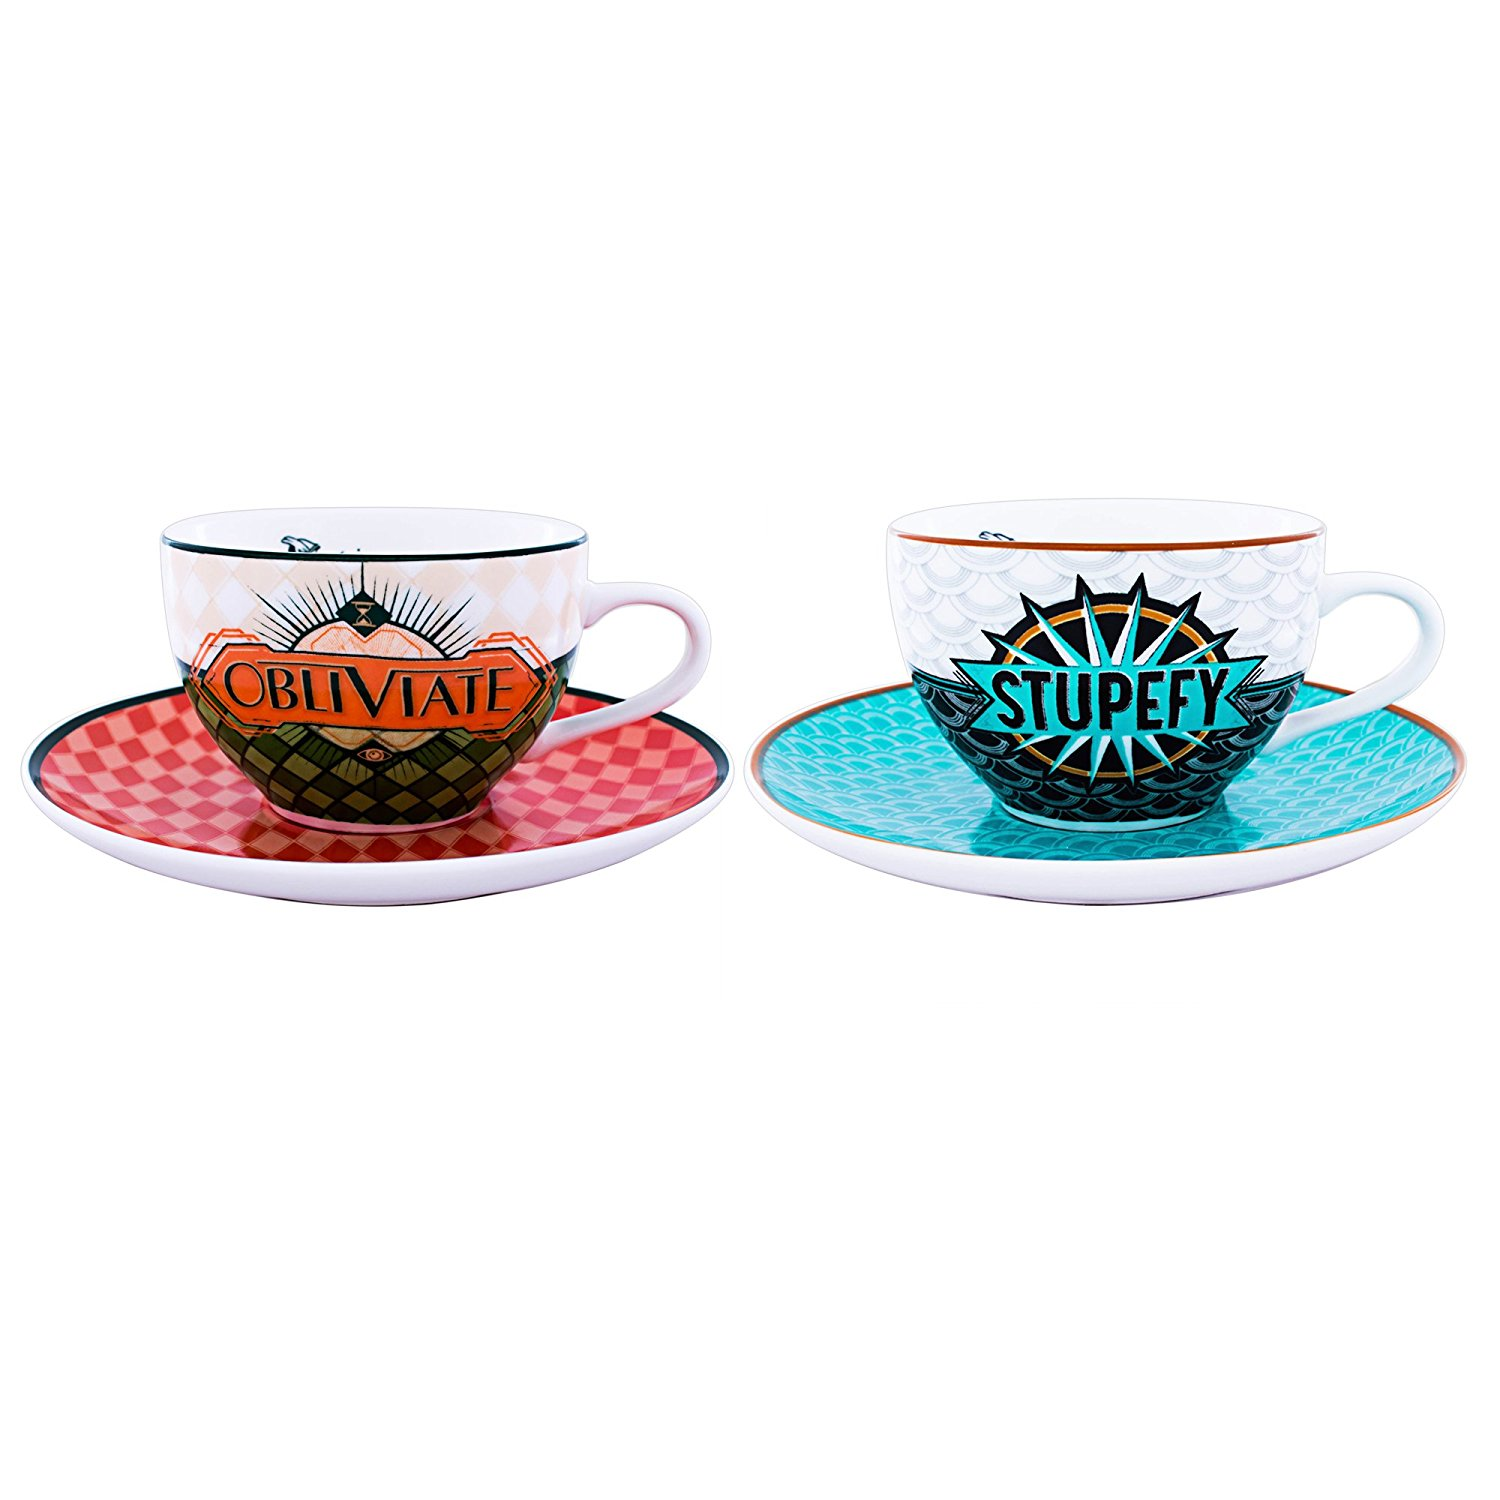 "Harry Potter Fantastic Beasts & Where To Find Them ""Obliviate"" & ""Stupefy"" Spells Tea Cup Set, 2-Pack, $24"